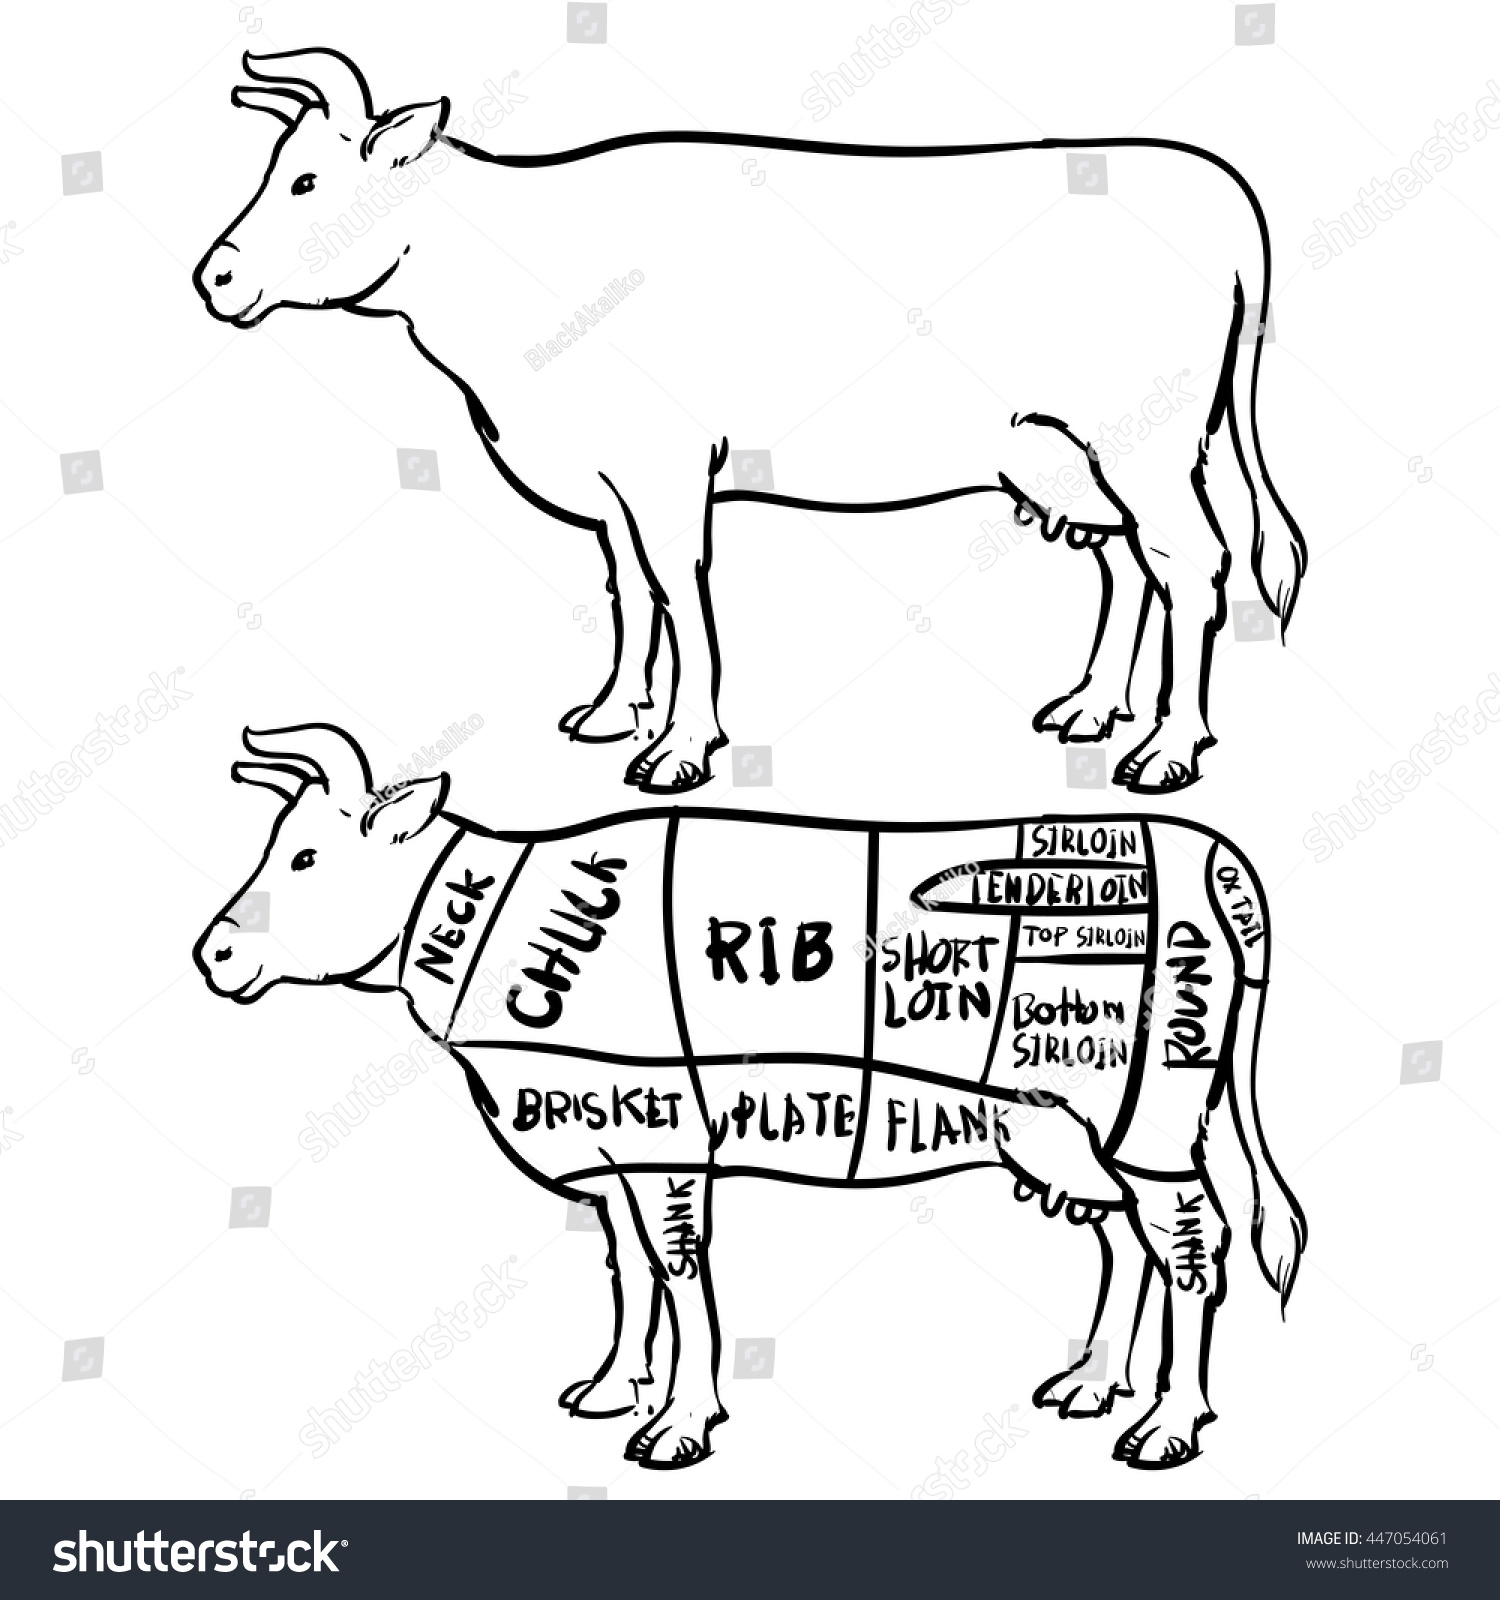 Cow cuts diagram butchery set hand stock vector 2018 447054061 cow cuts diagram and butchery set hand drawn beef isolated on white background drawing ccuart Gallery